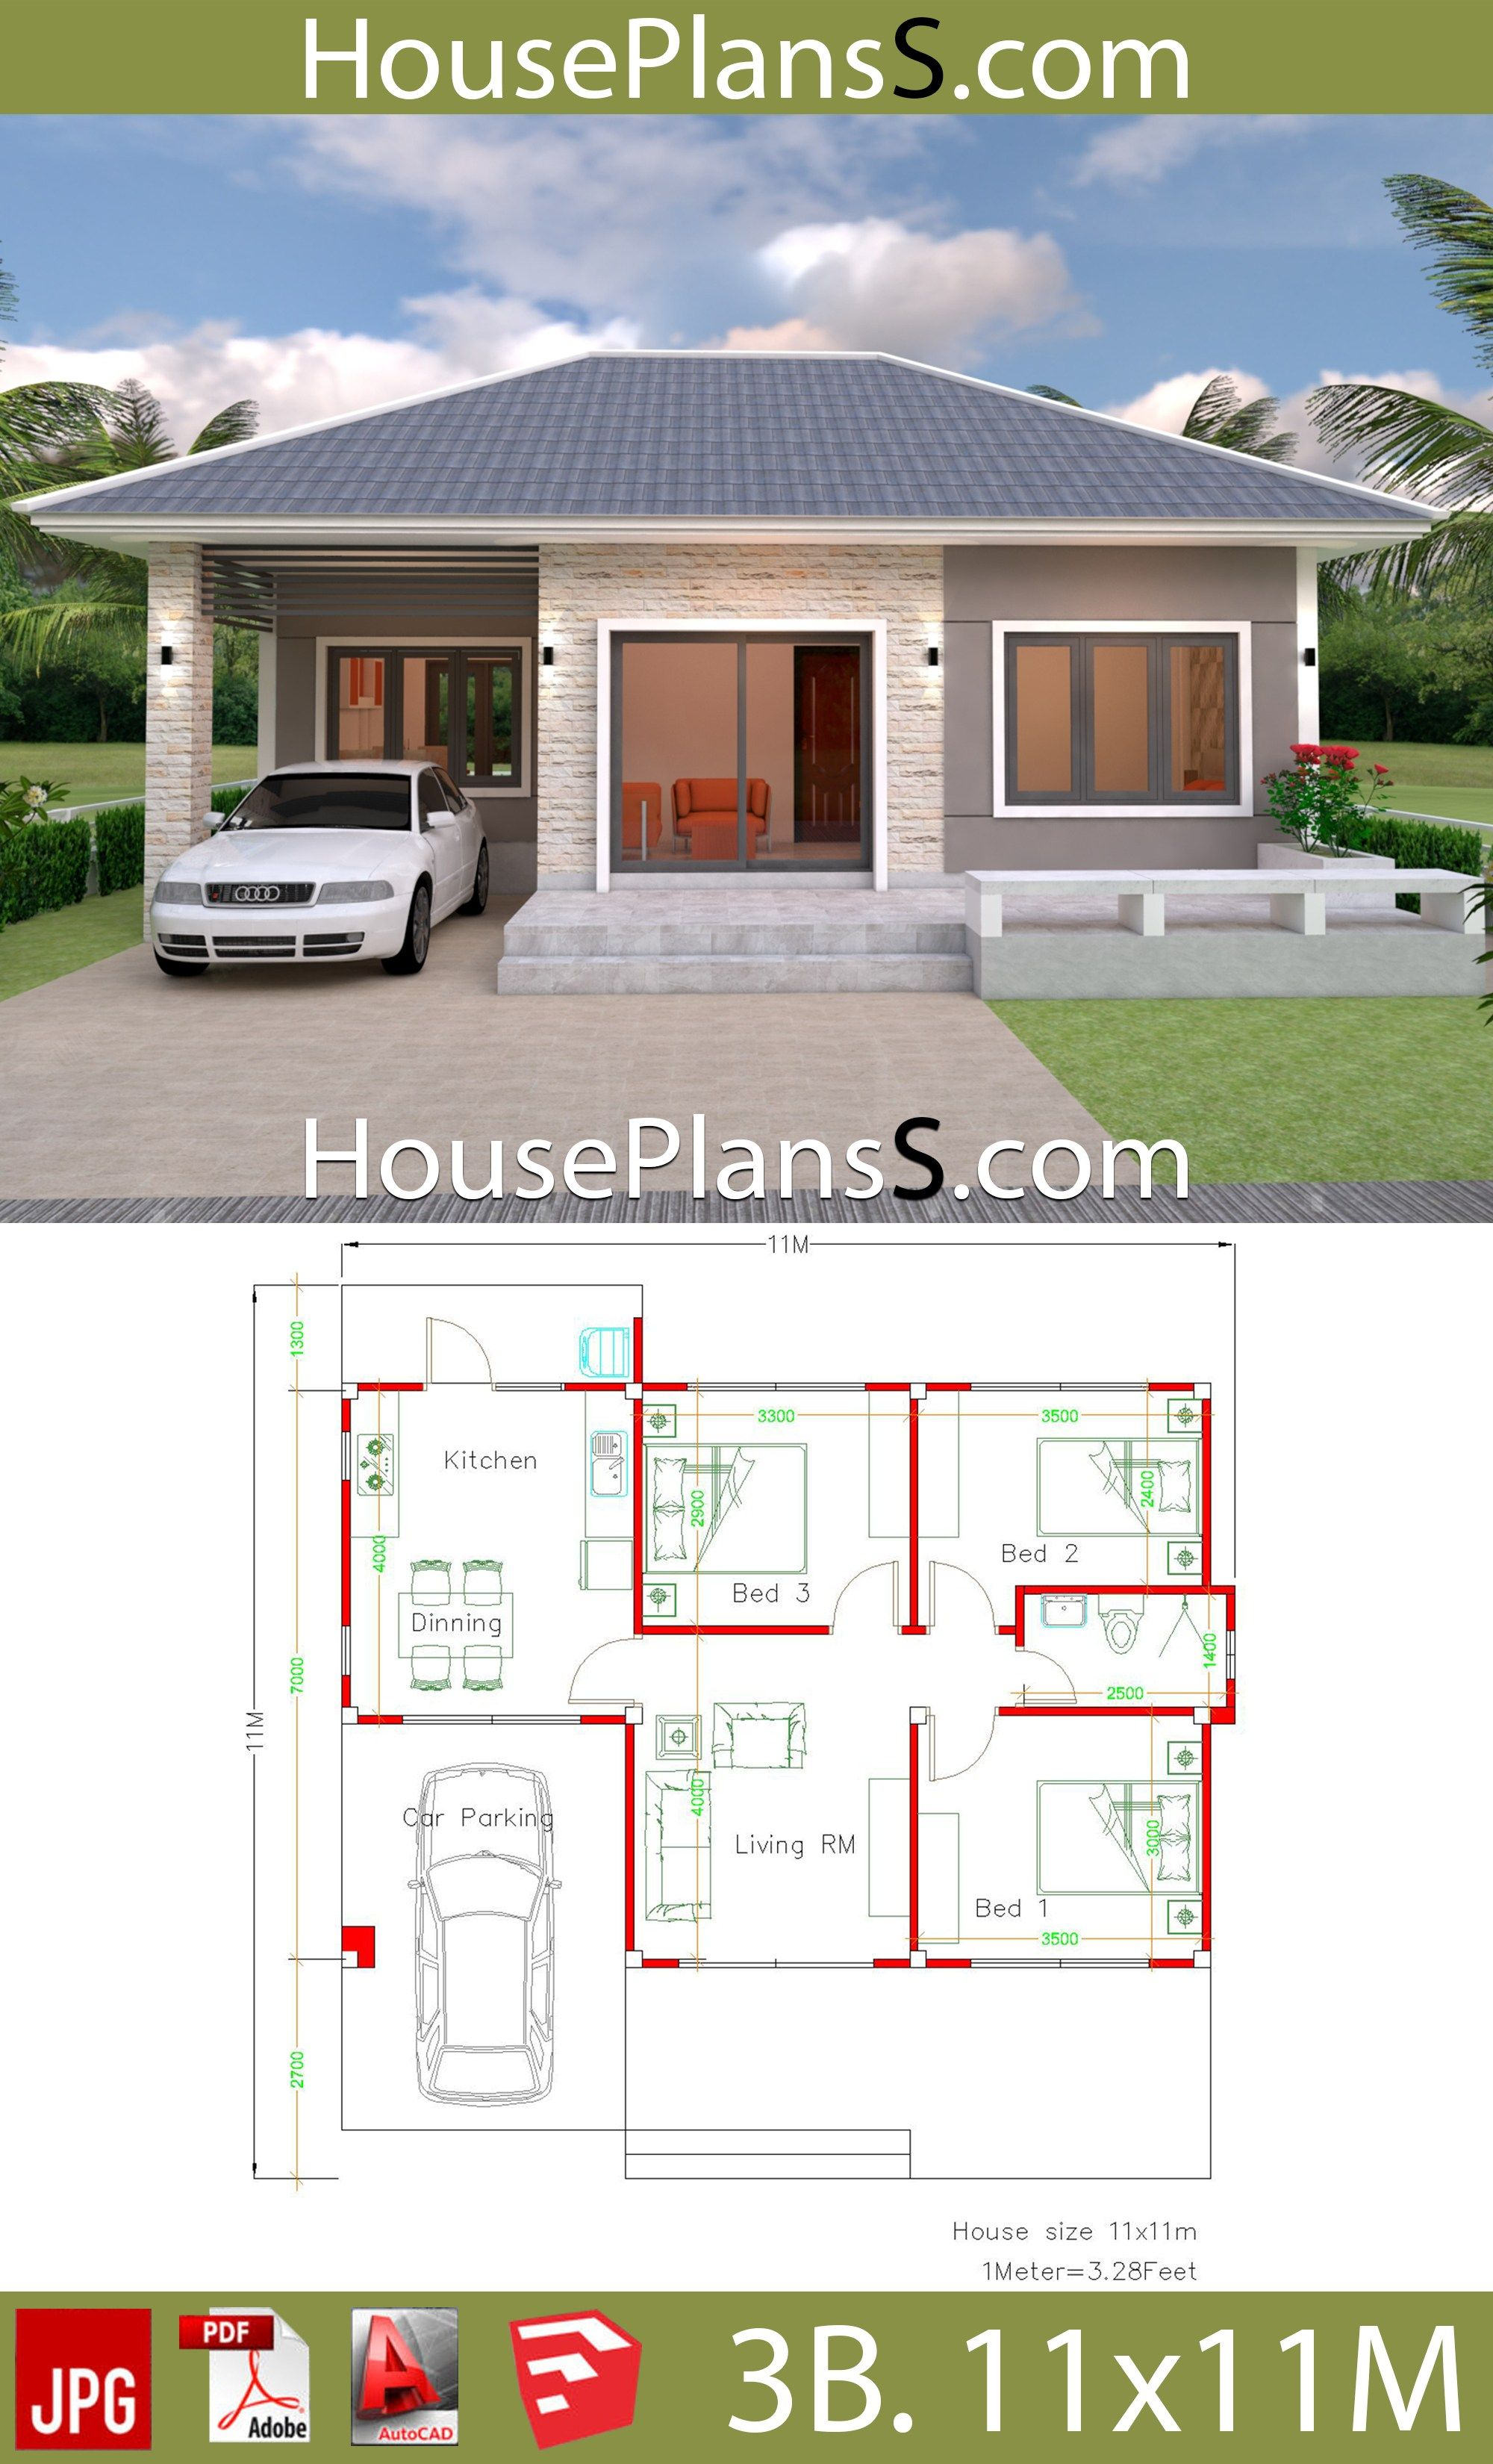 Simple House Design Plans 11x11 With 3 Bedrooms Full Plans Small House Layout Simple House Design Small House Design